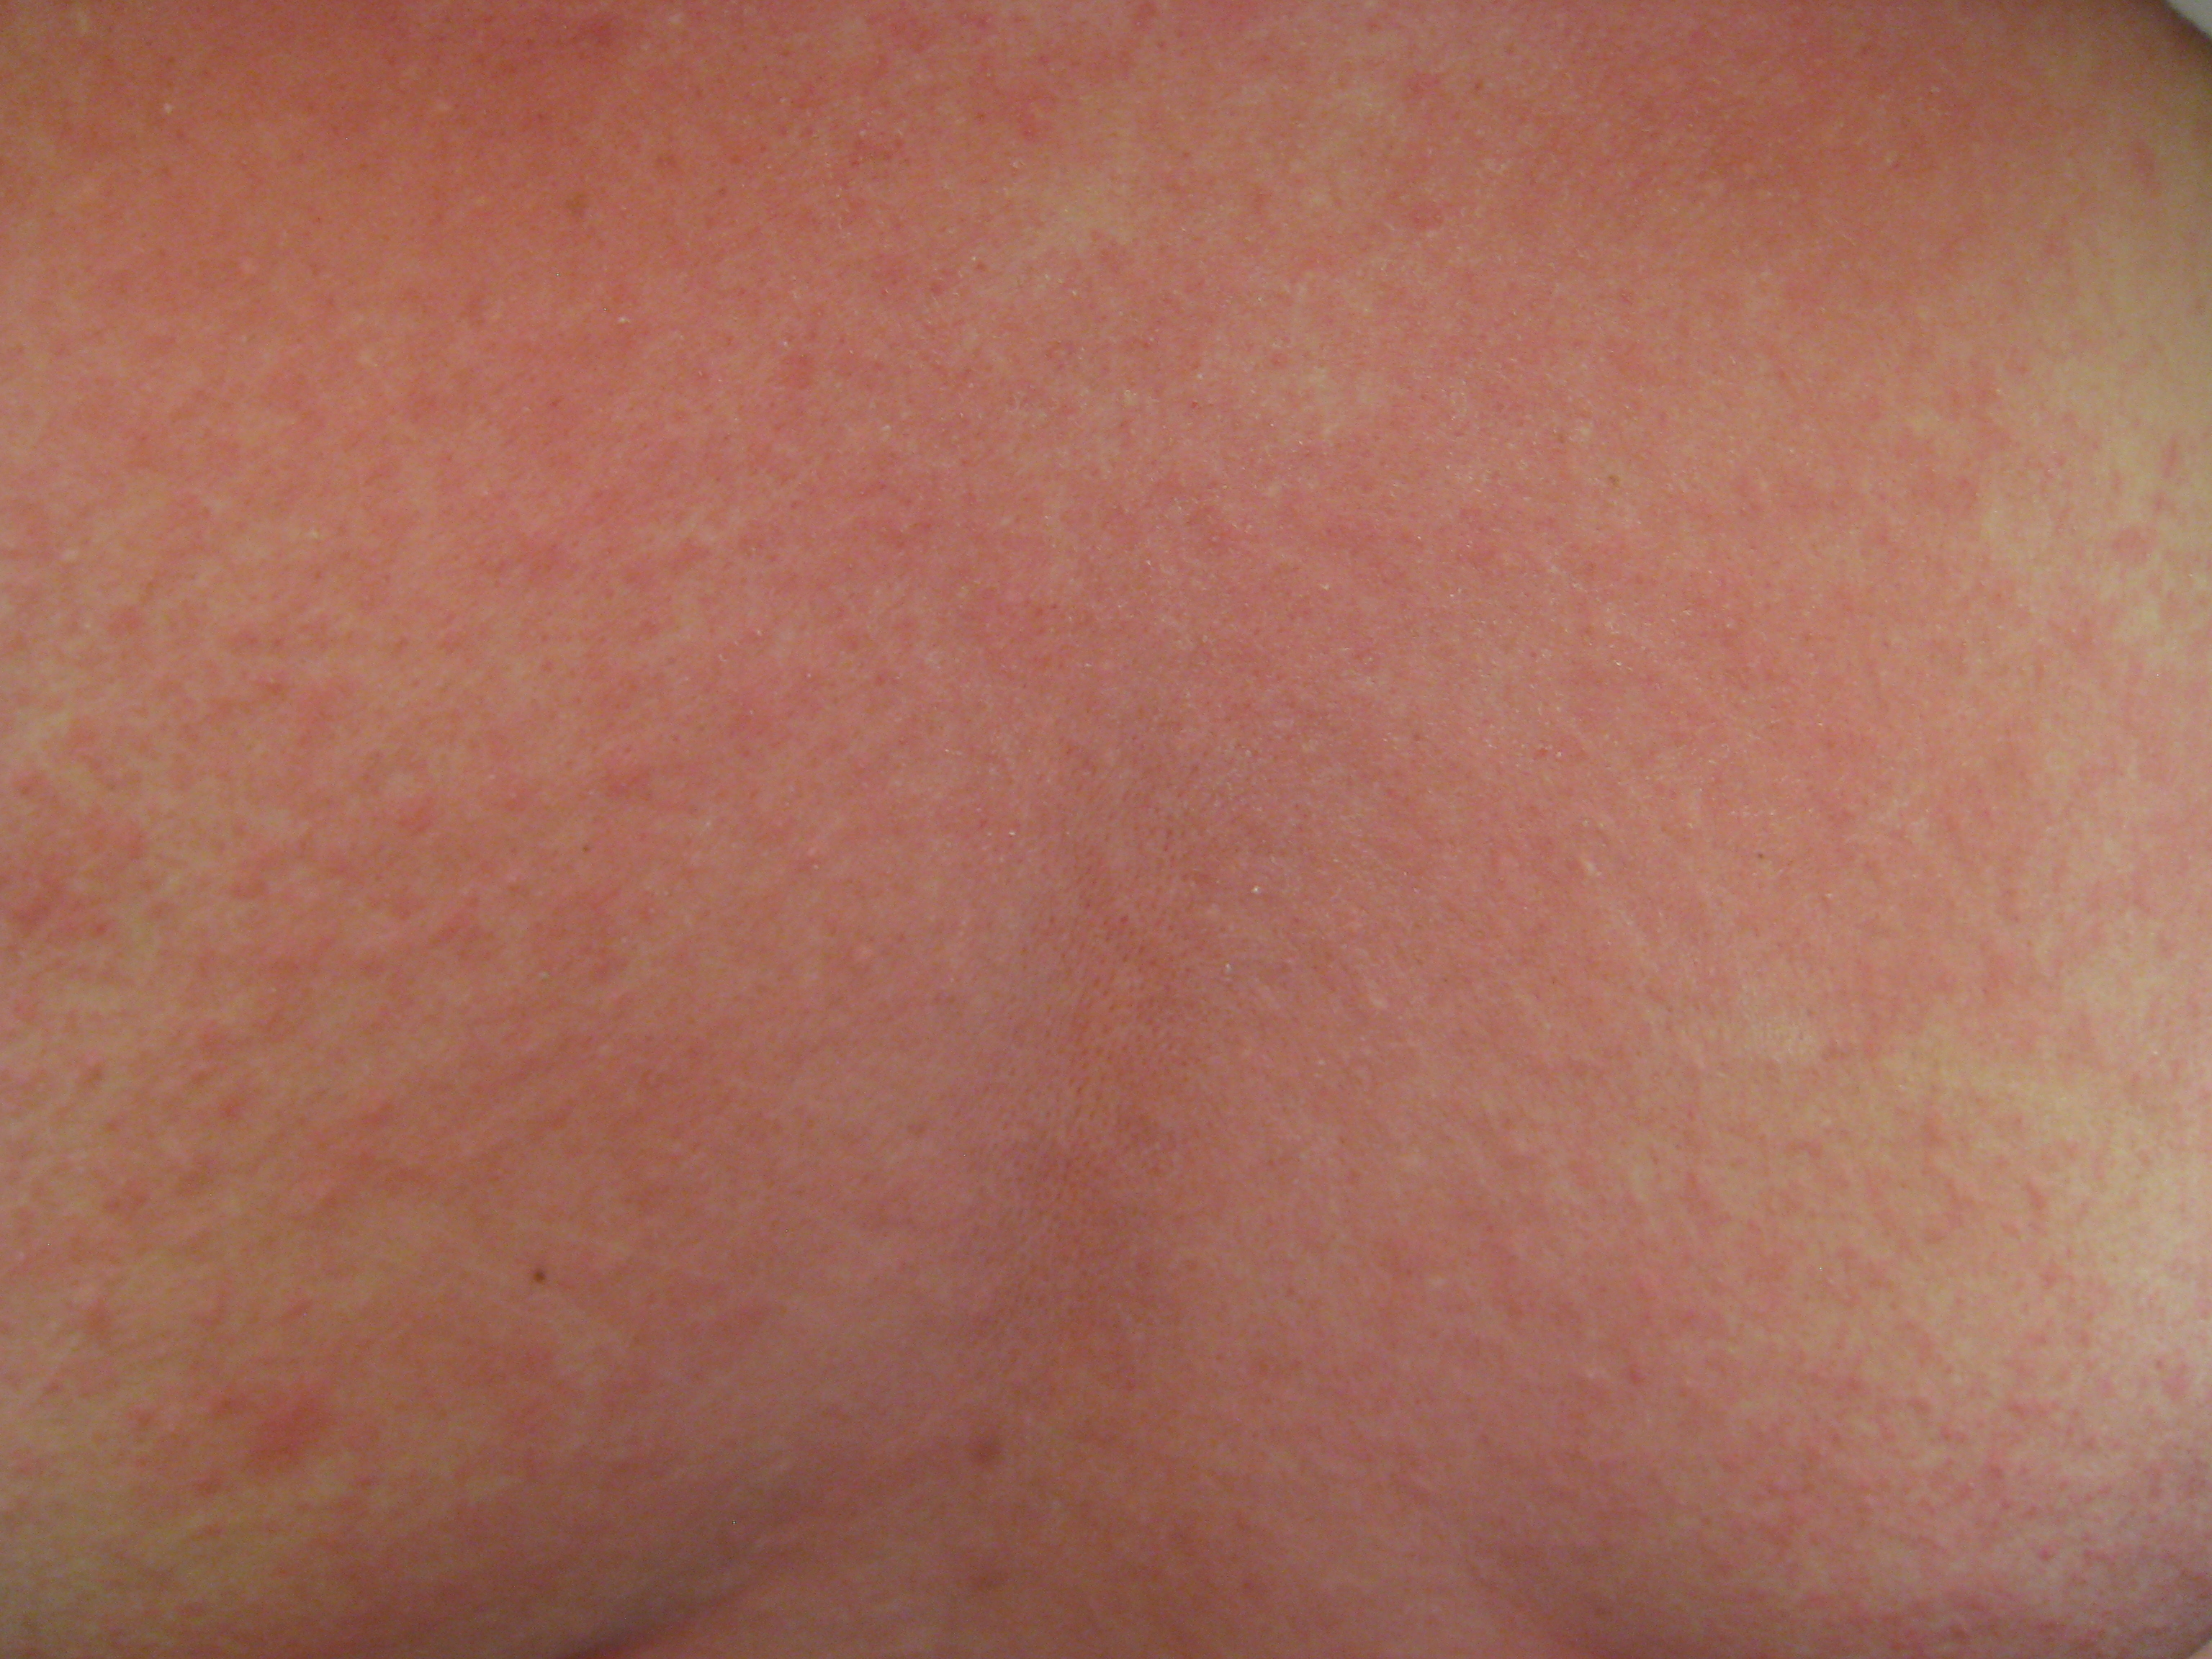 Red Rash On Chest